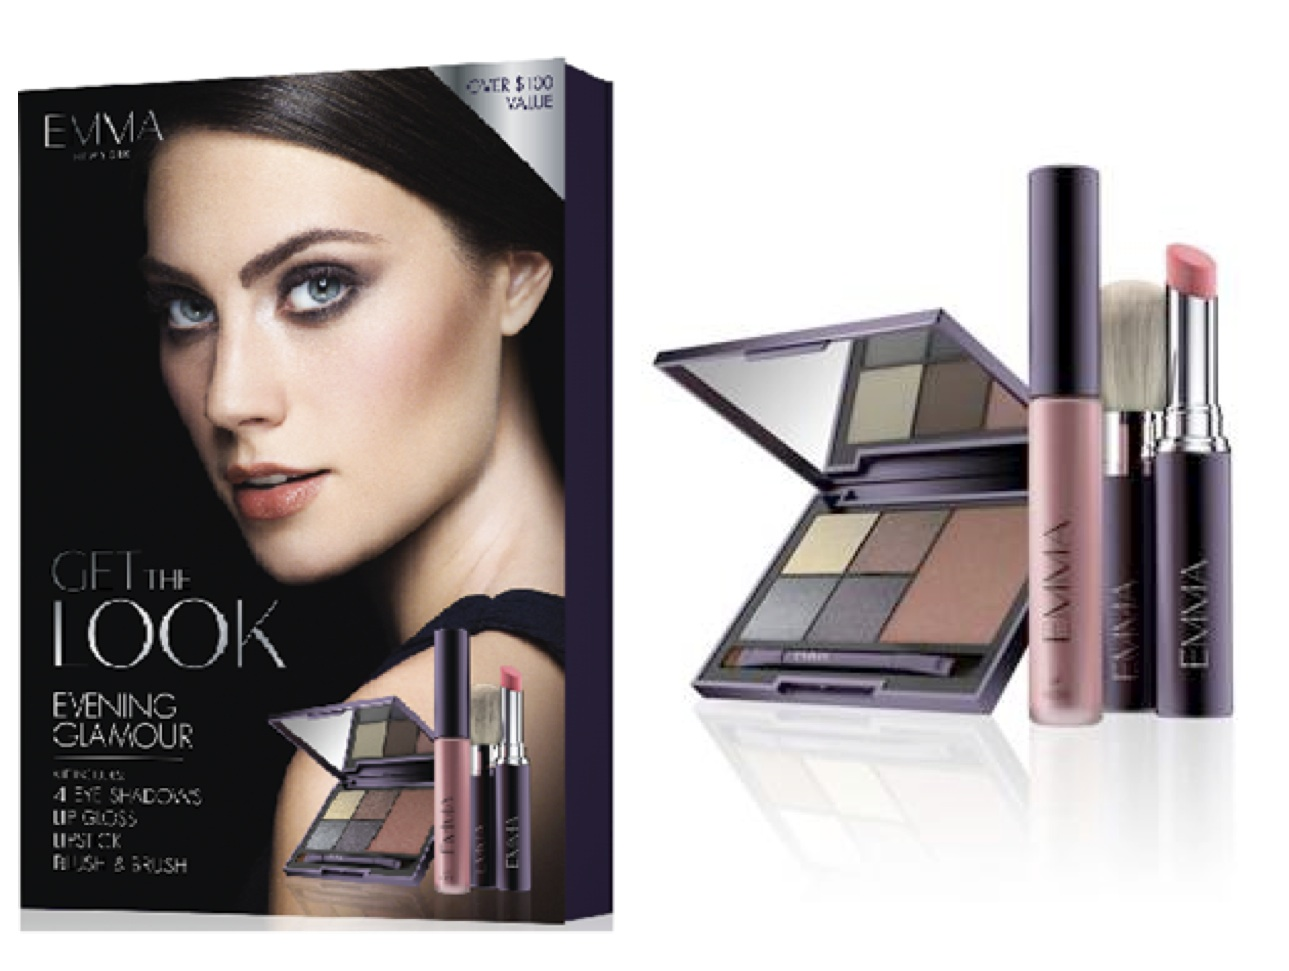 Glam Up Your Makeup With the New Evening Glamour Collection